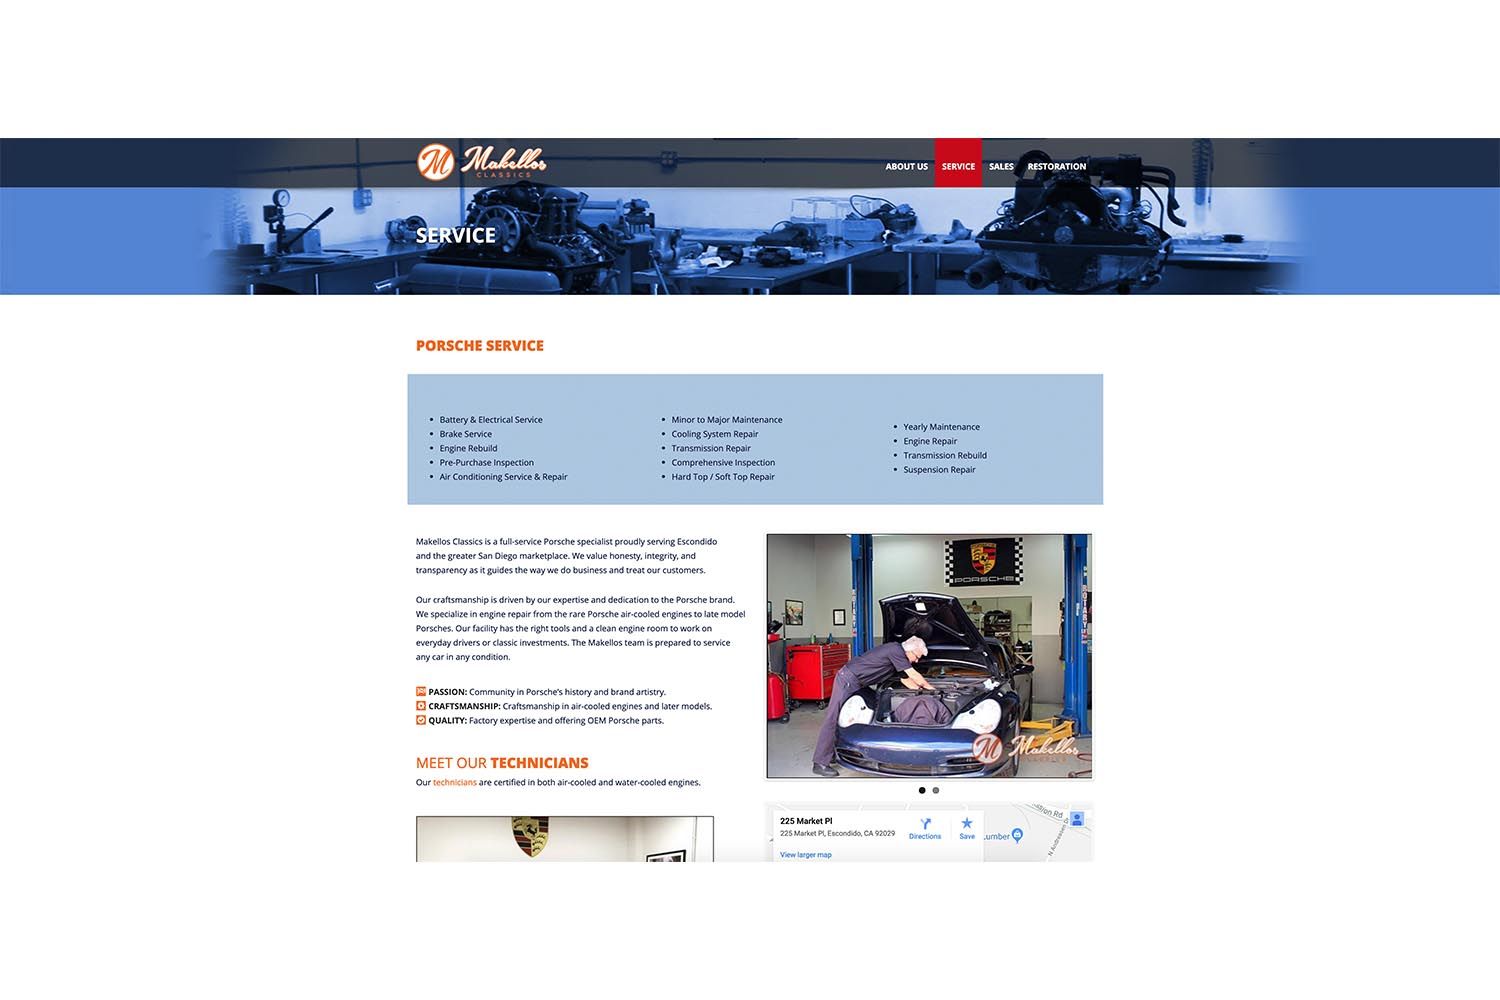 The Old Services Page